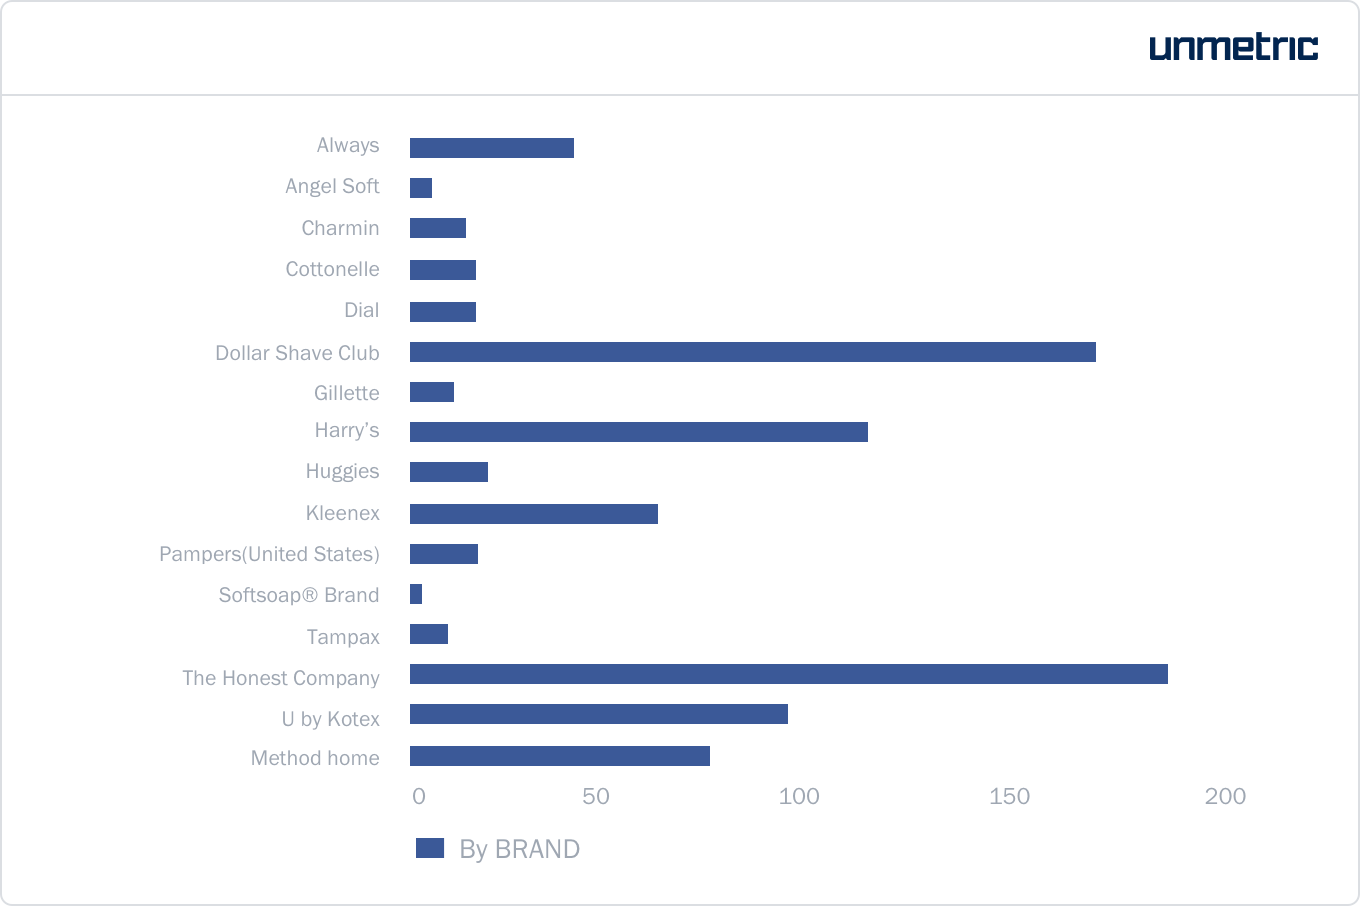 Number of posts published by each CPG brand